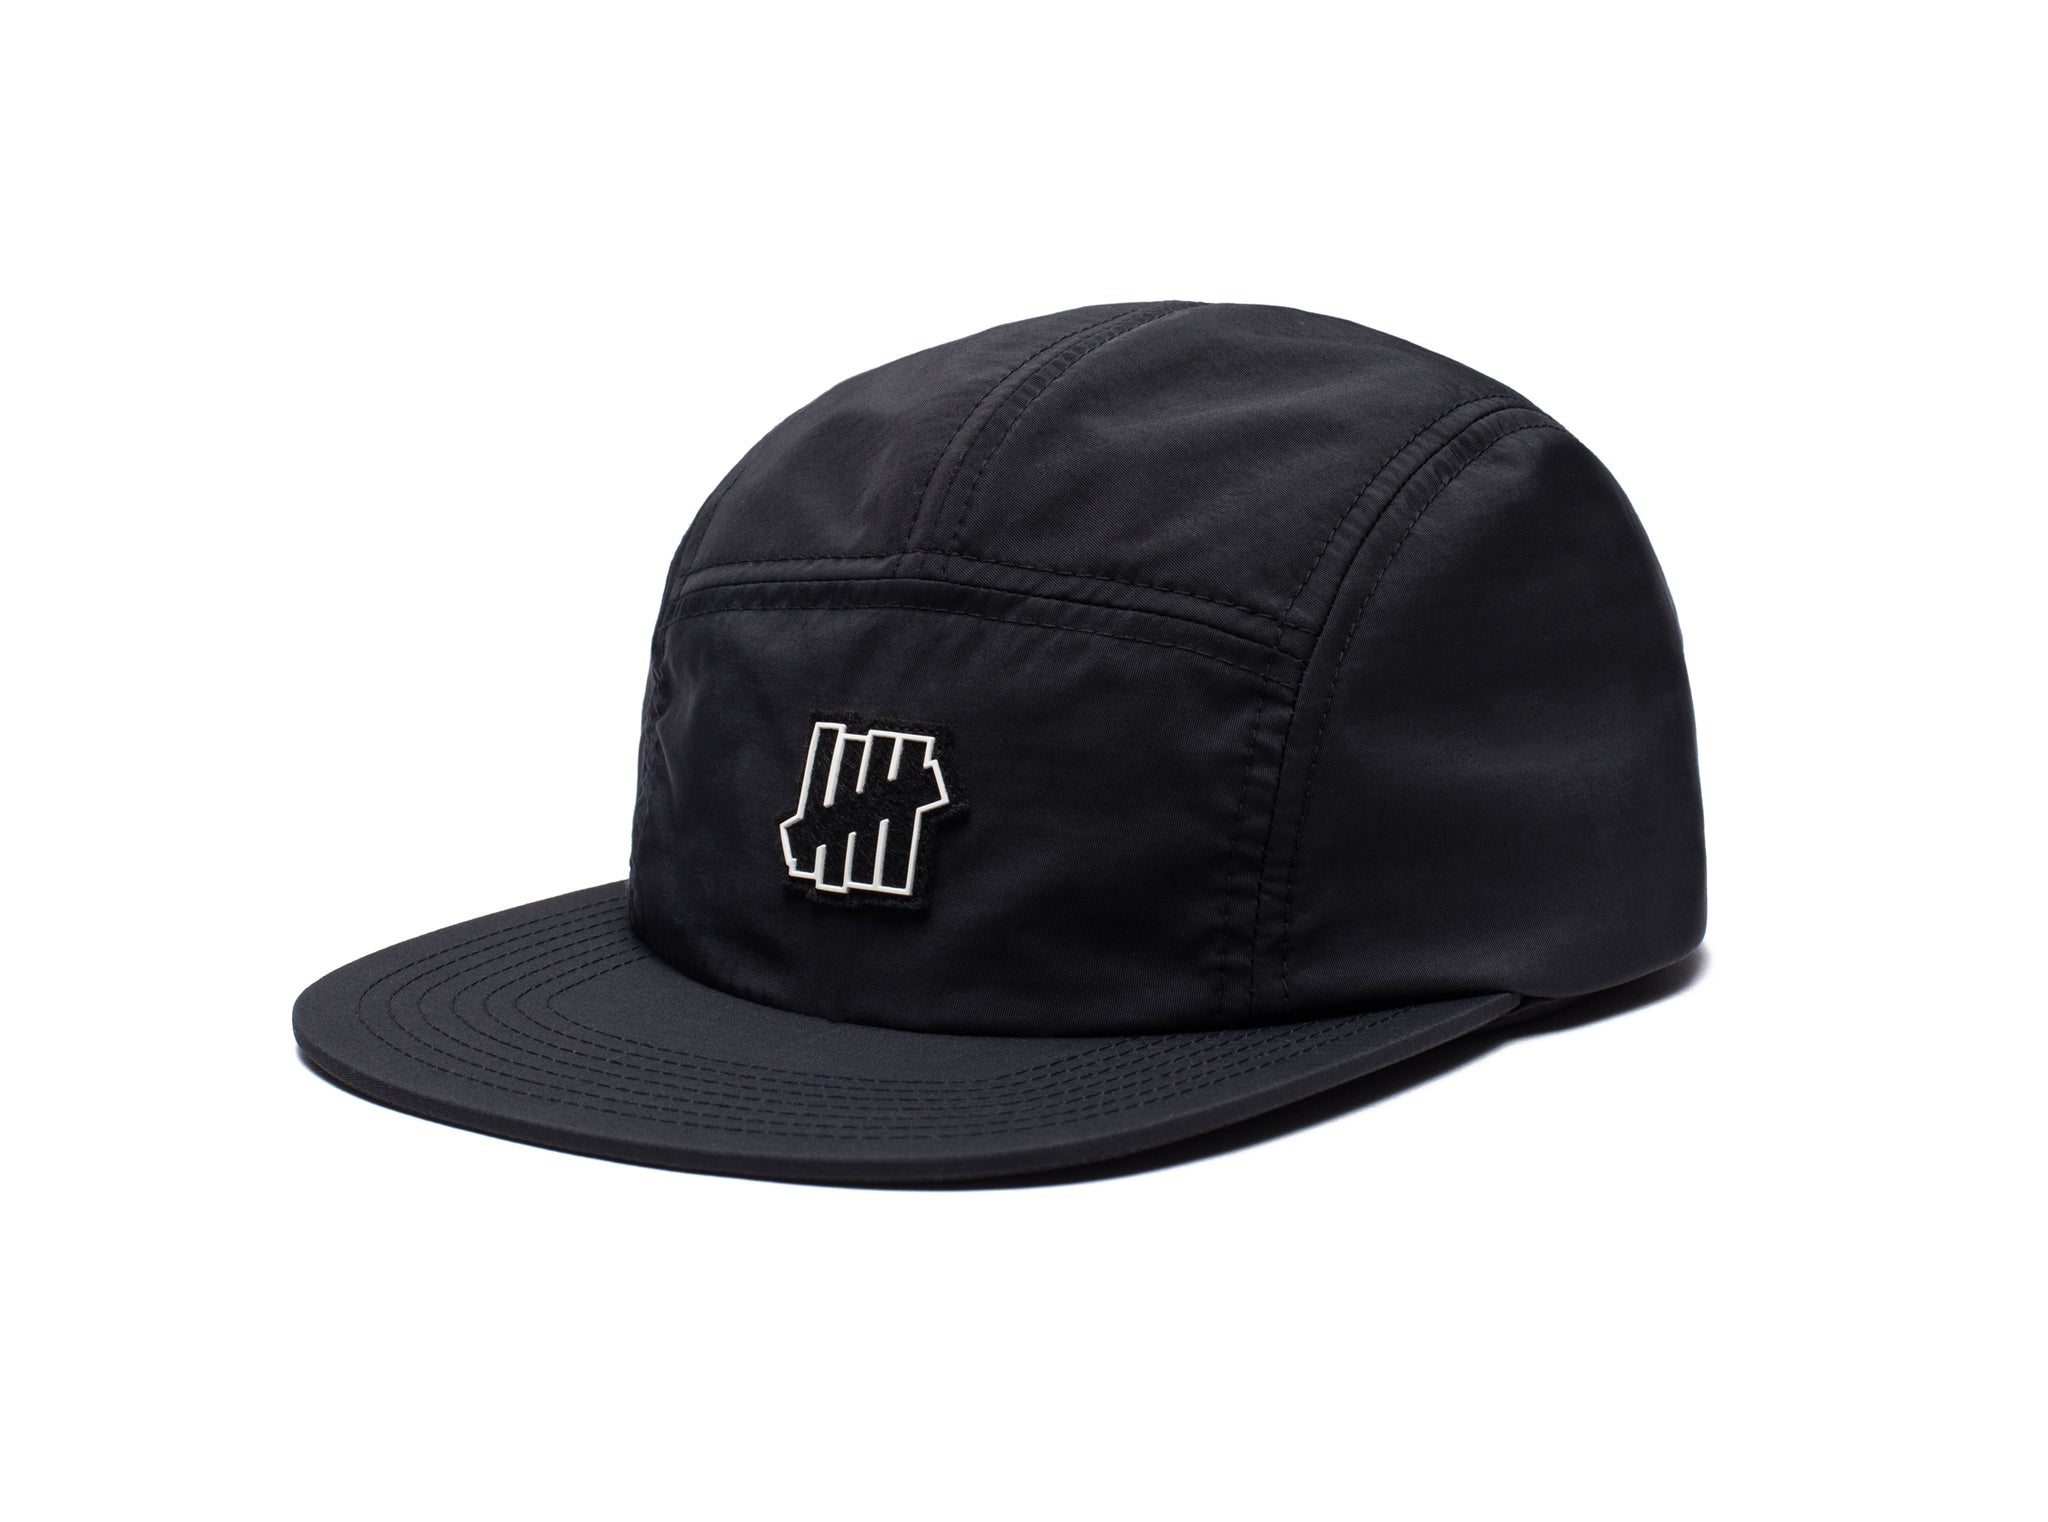 UNDEFEATED ICON CAMP HAT